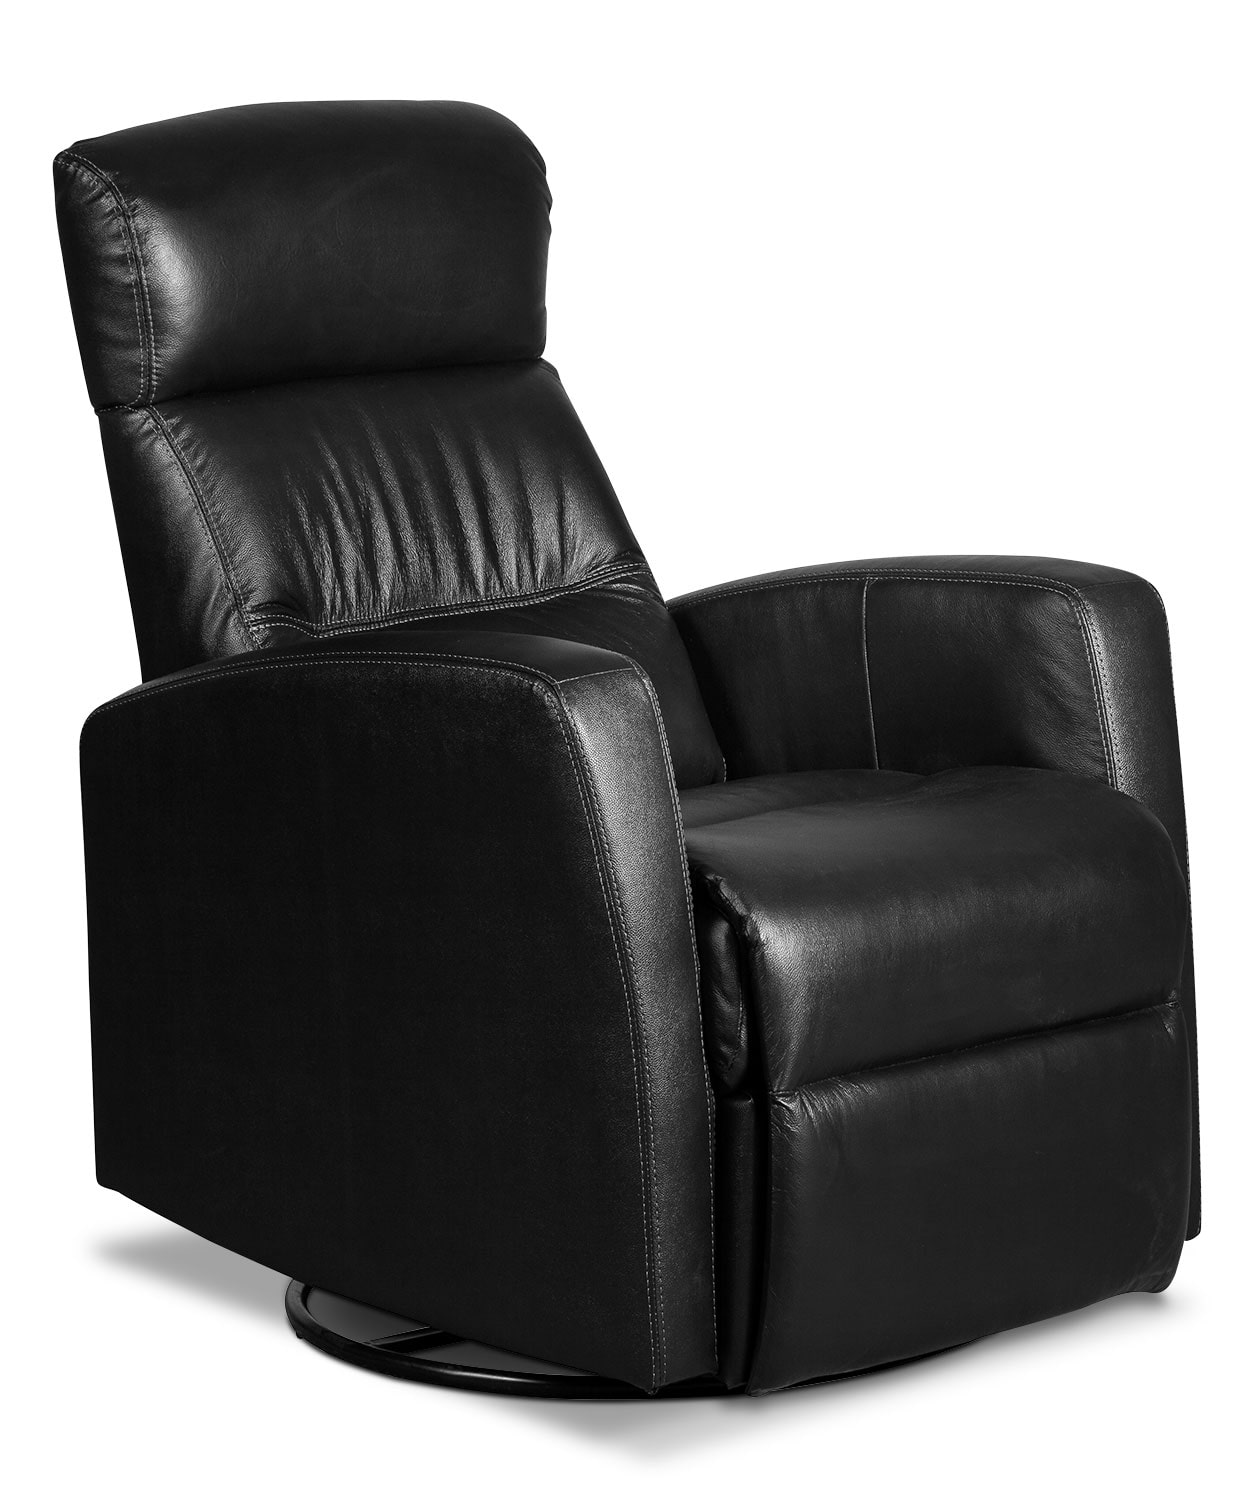 Swivel Rocker Recliners Living Room Furniture Reclining Chairs The Brick